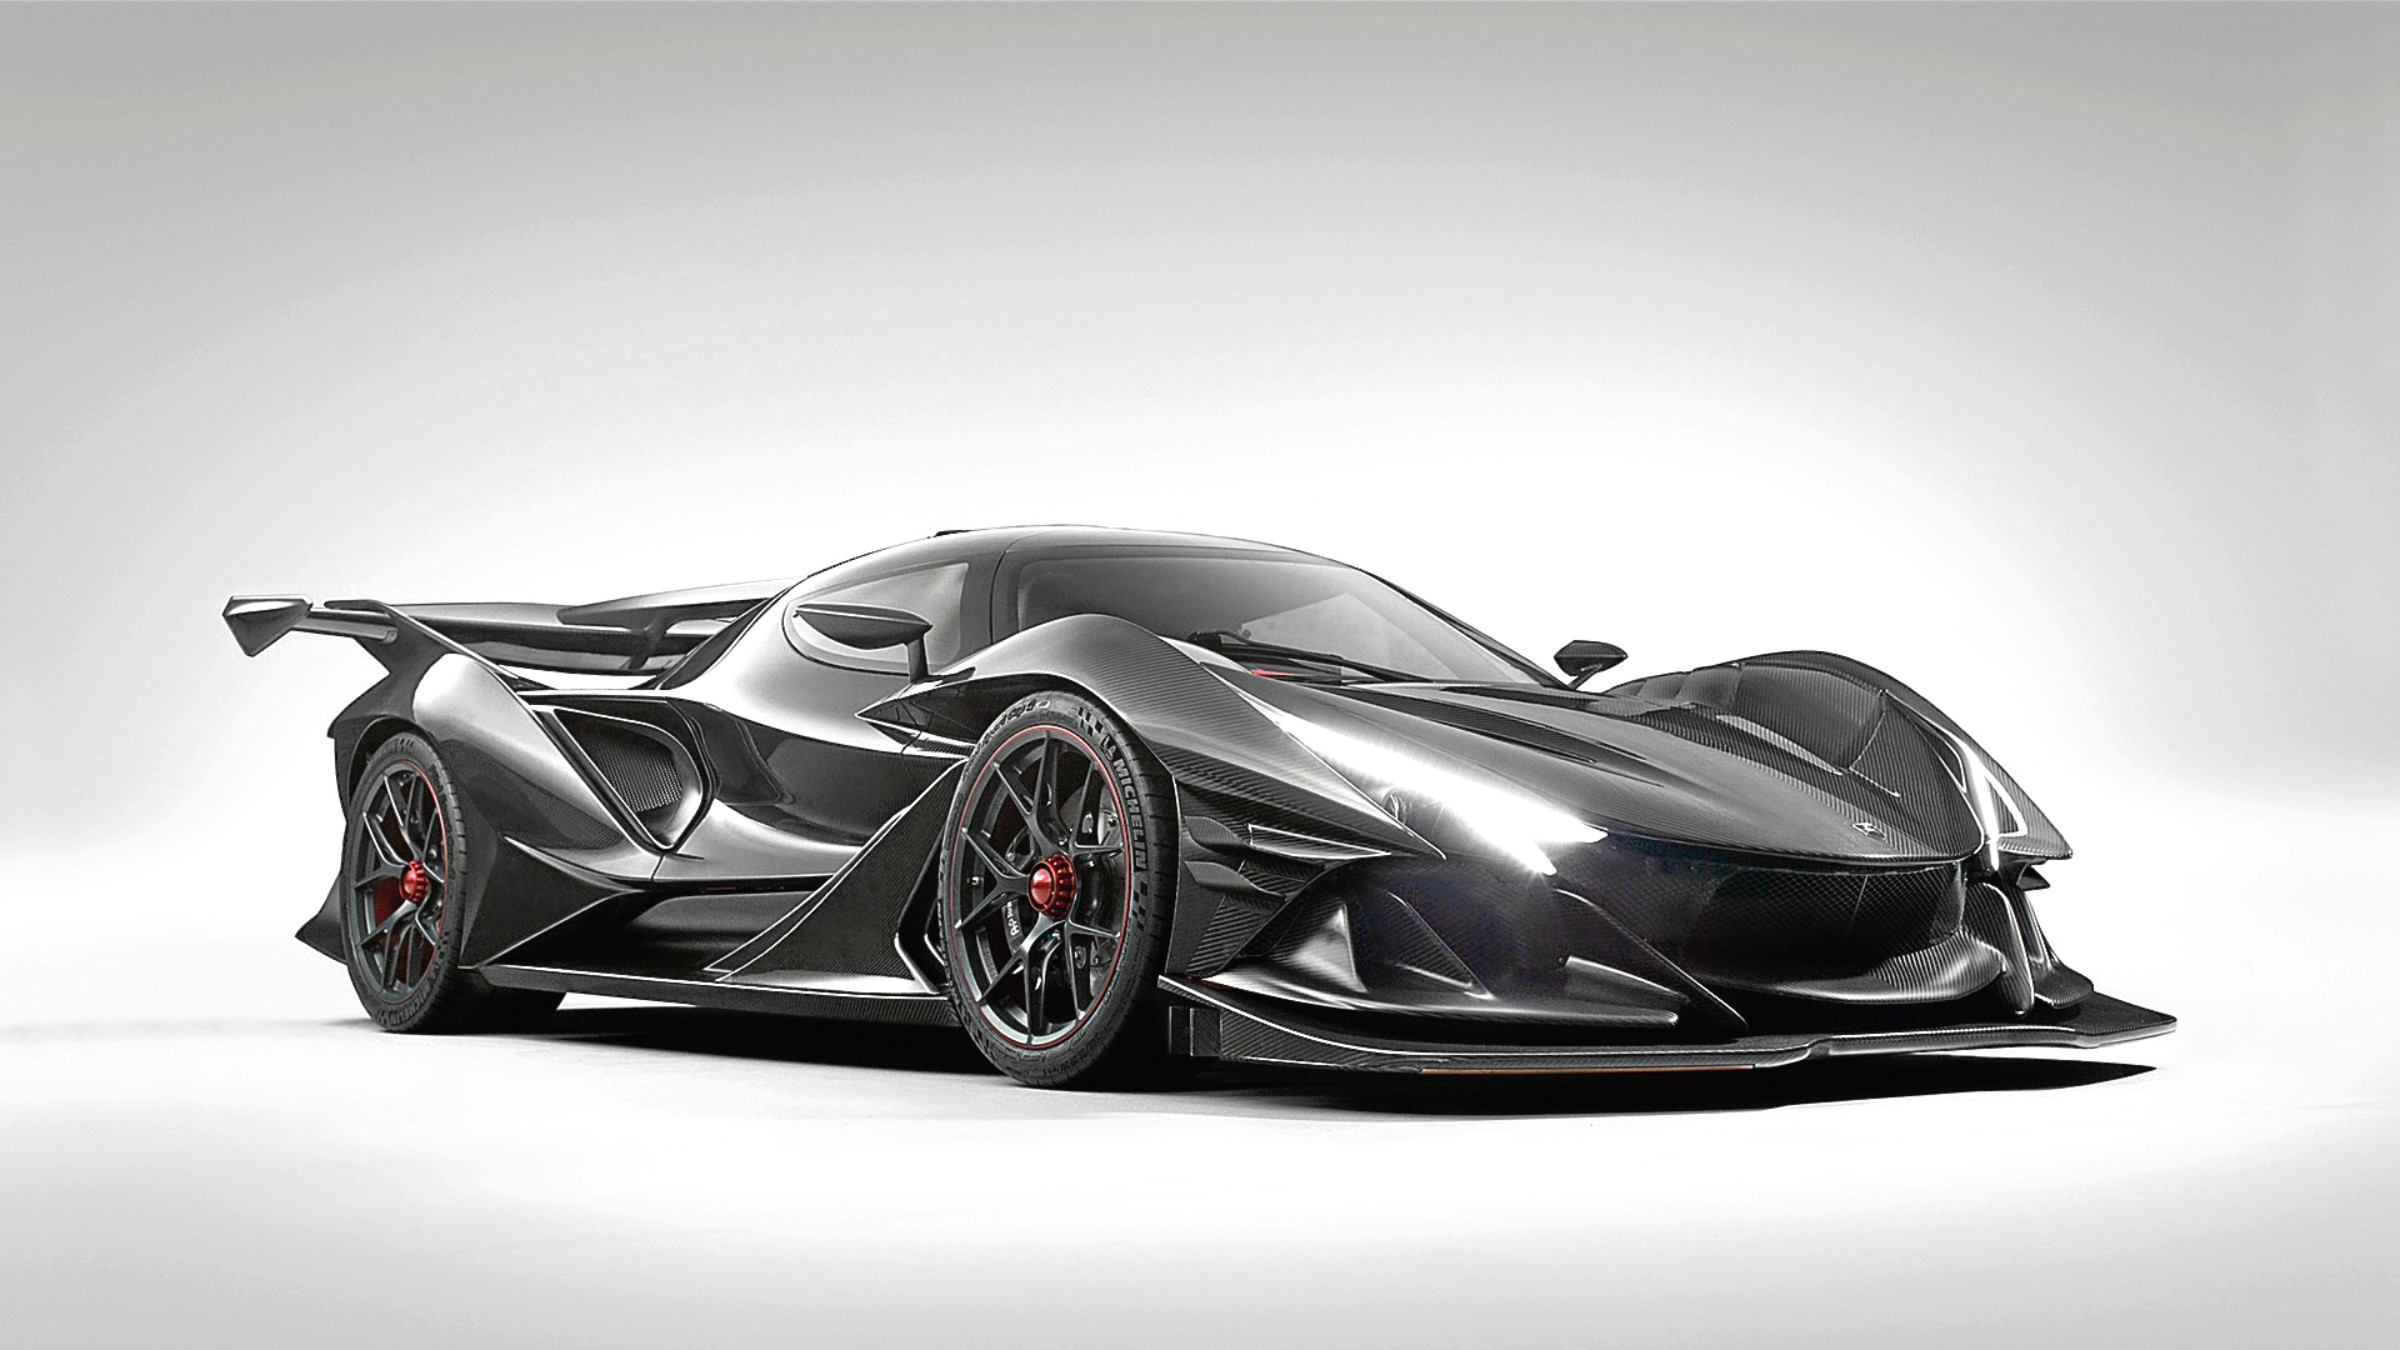 Undated Handout Photo of Apollo Intensa Emozione, Germany's new V12 hypercar. See PA Feature MOTORING News. Picture credit should read: Apollo Automobi/Handout/PA. WARNING: This picture must only be used to accompany PA Feature MOTORING News.